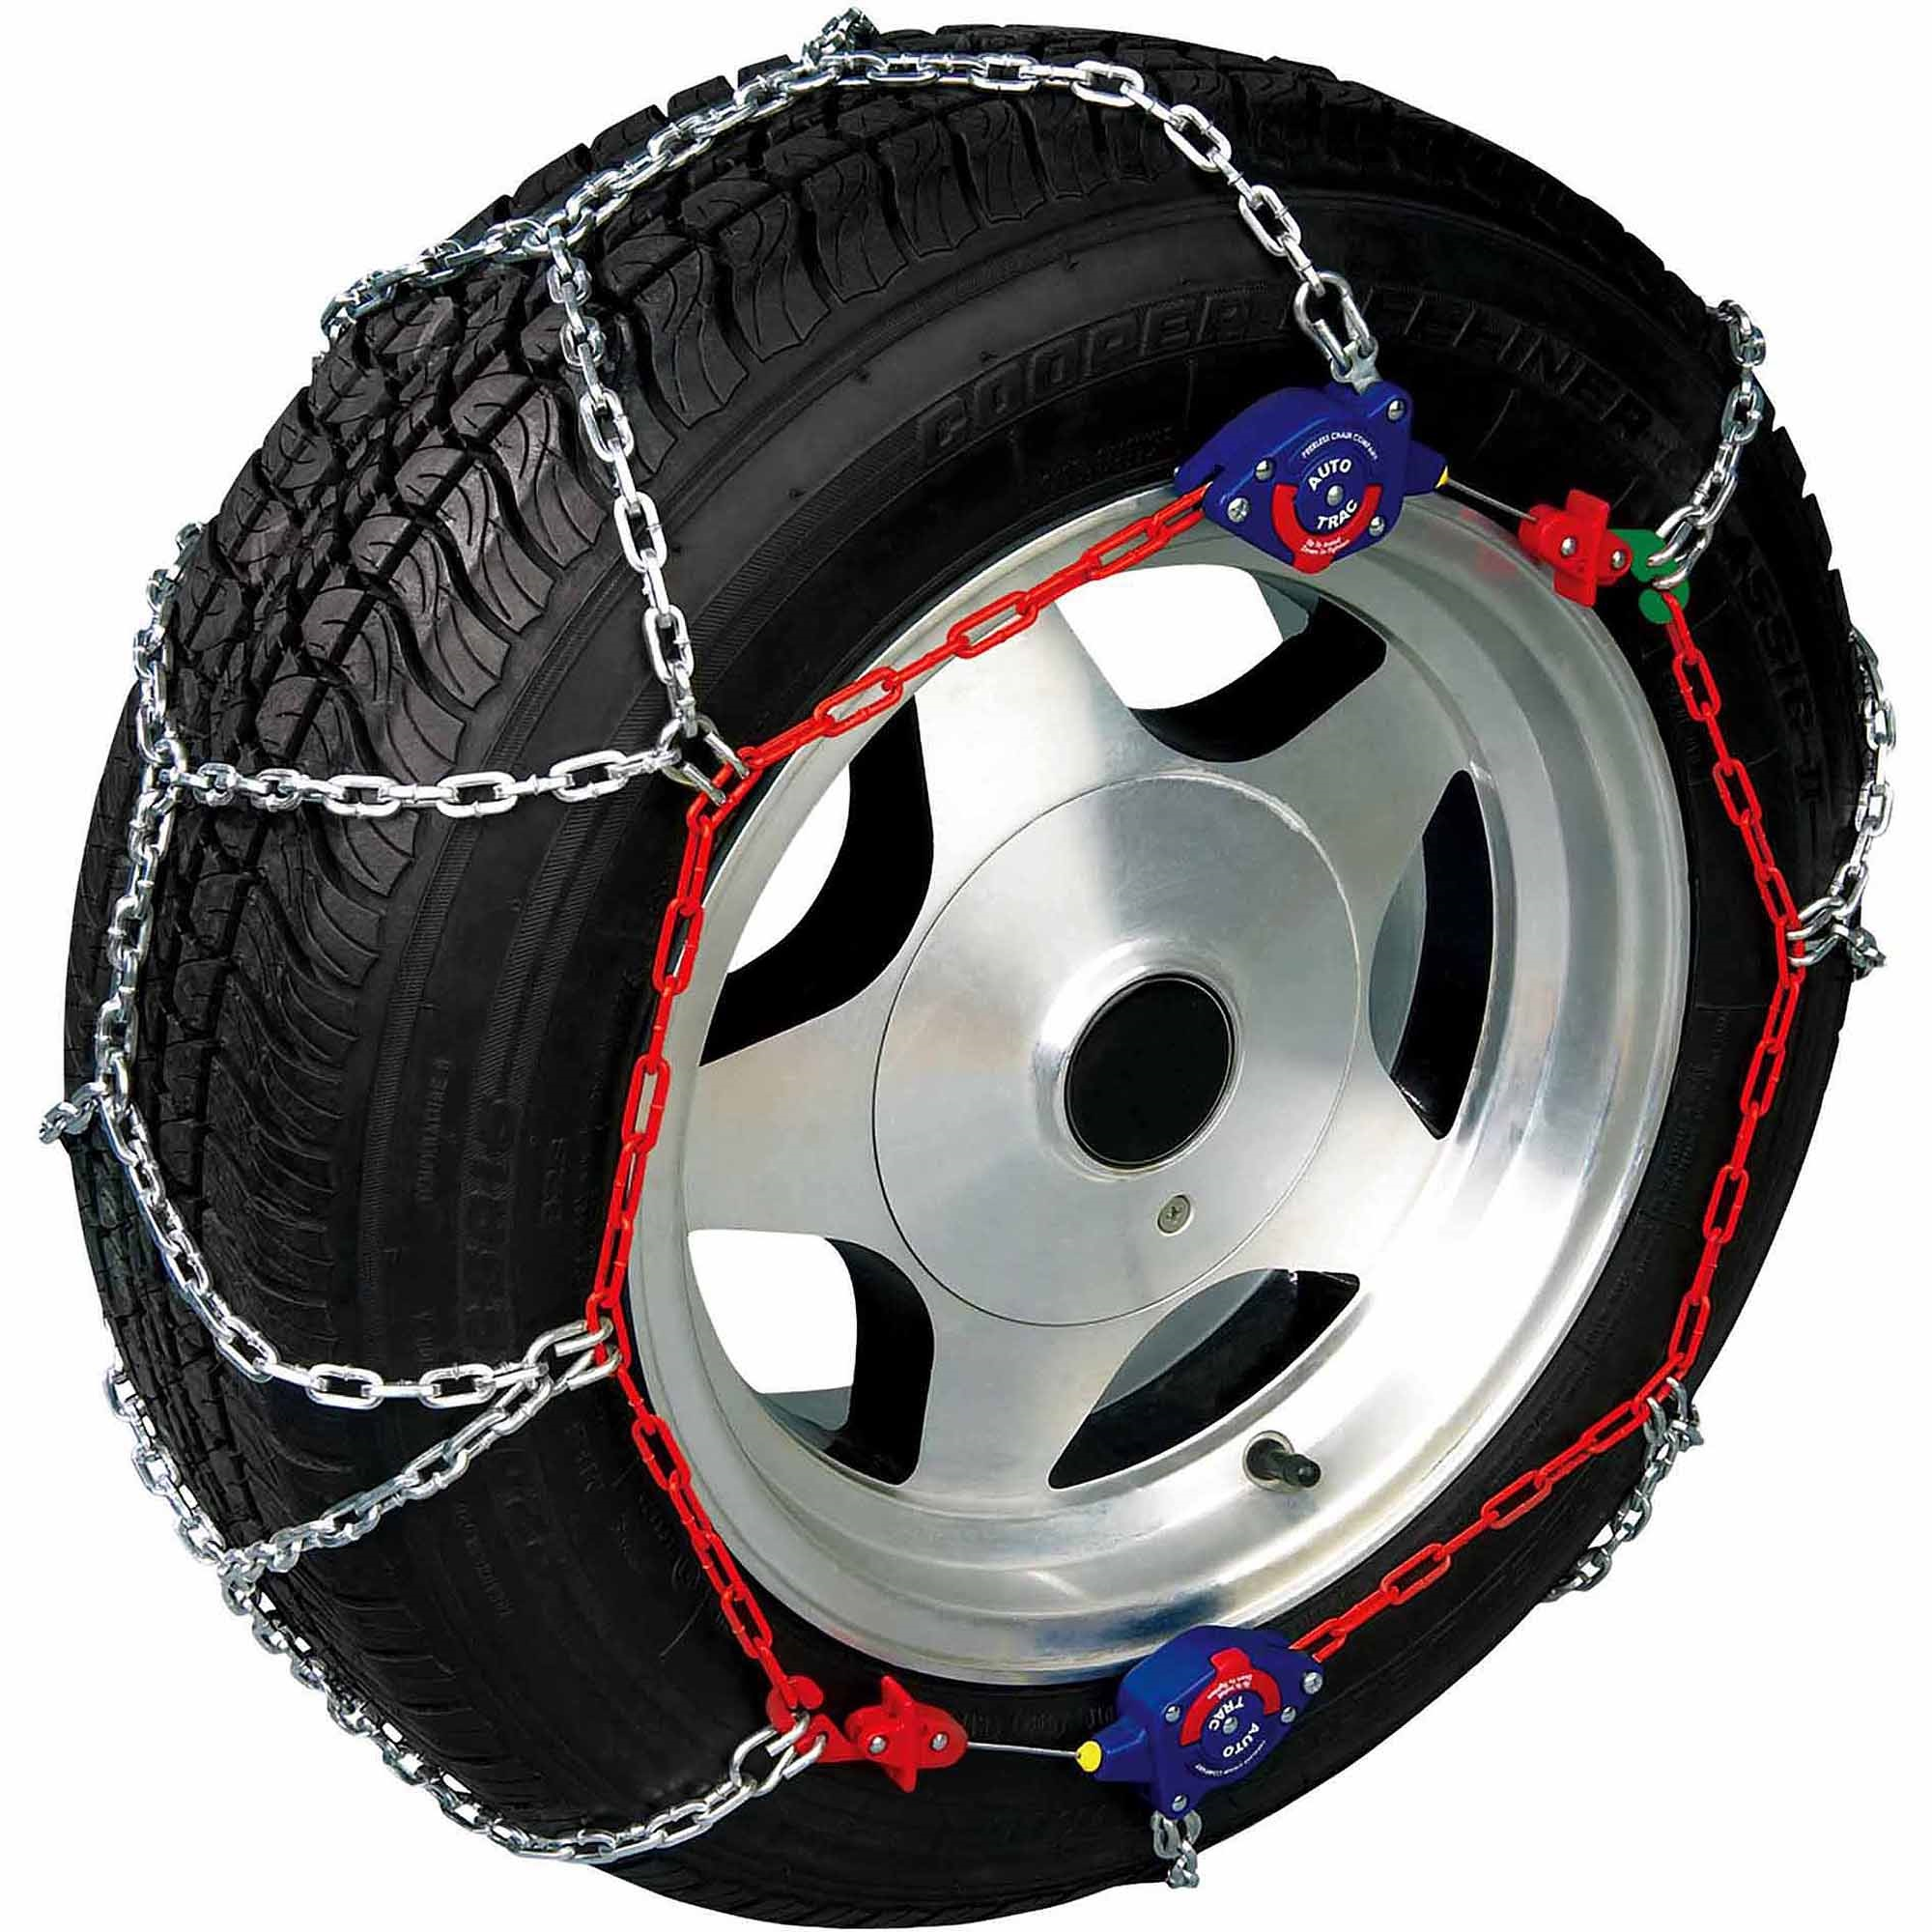 Auto Track 2wd Chains 12mm Mac S Waterski